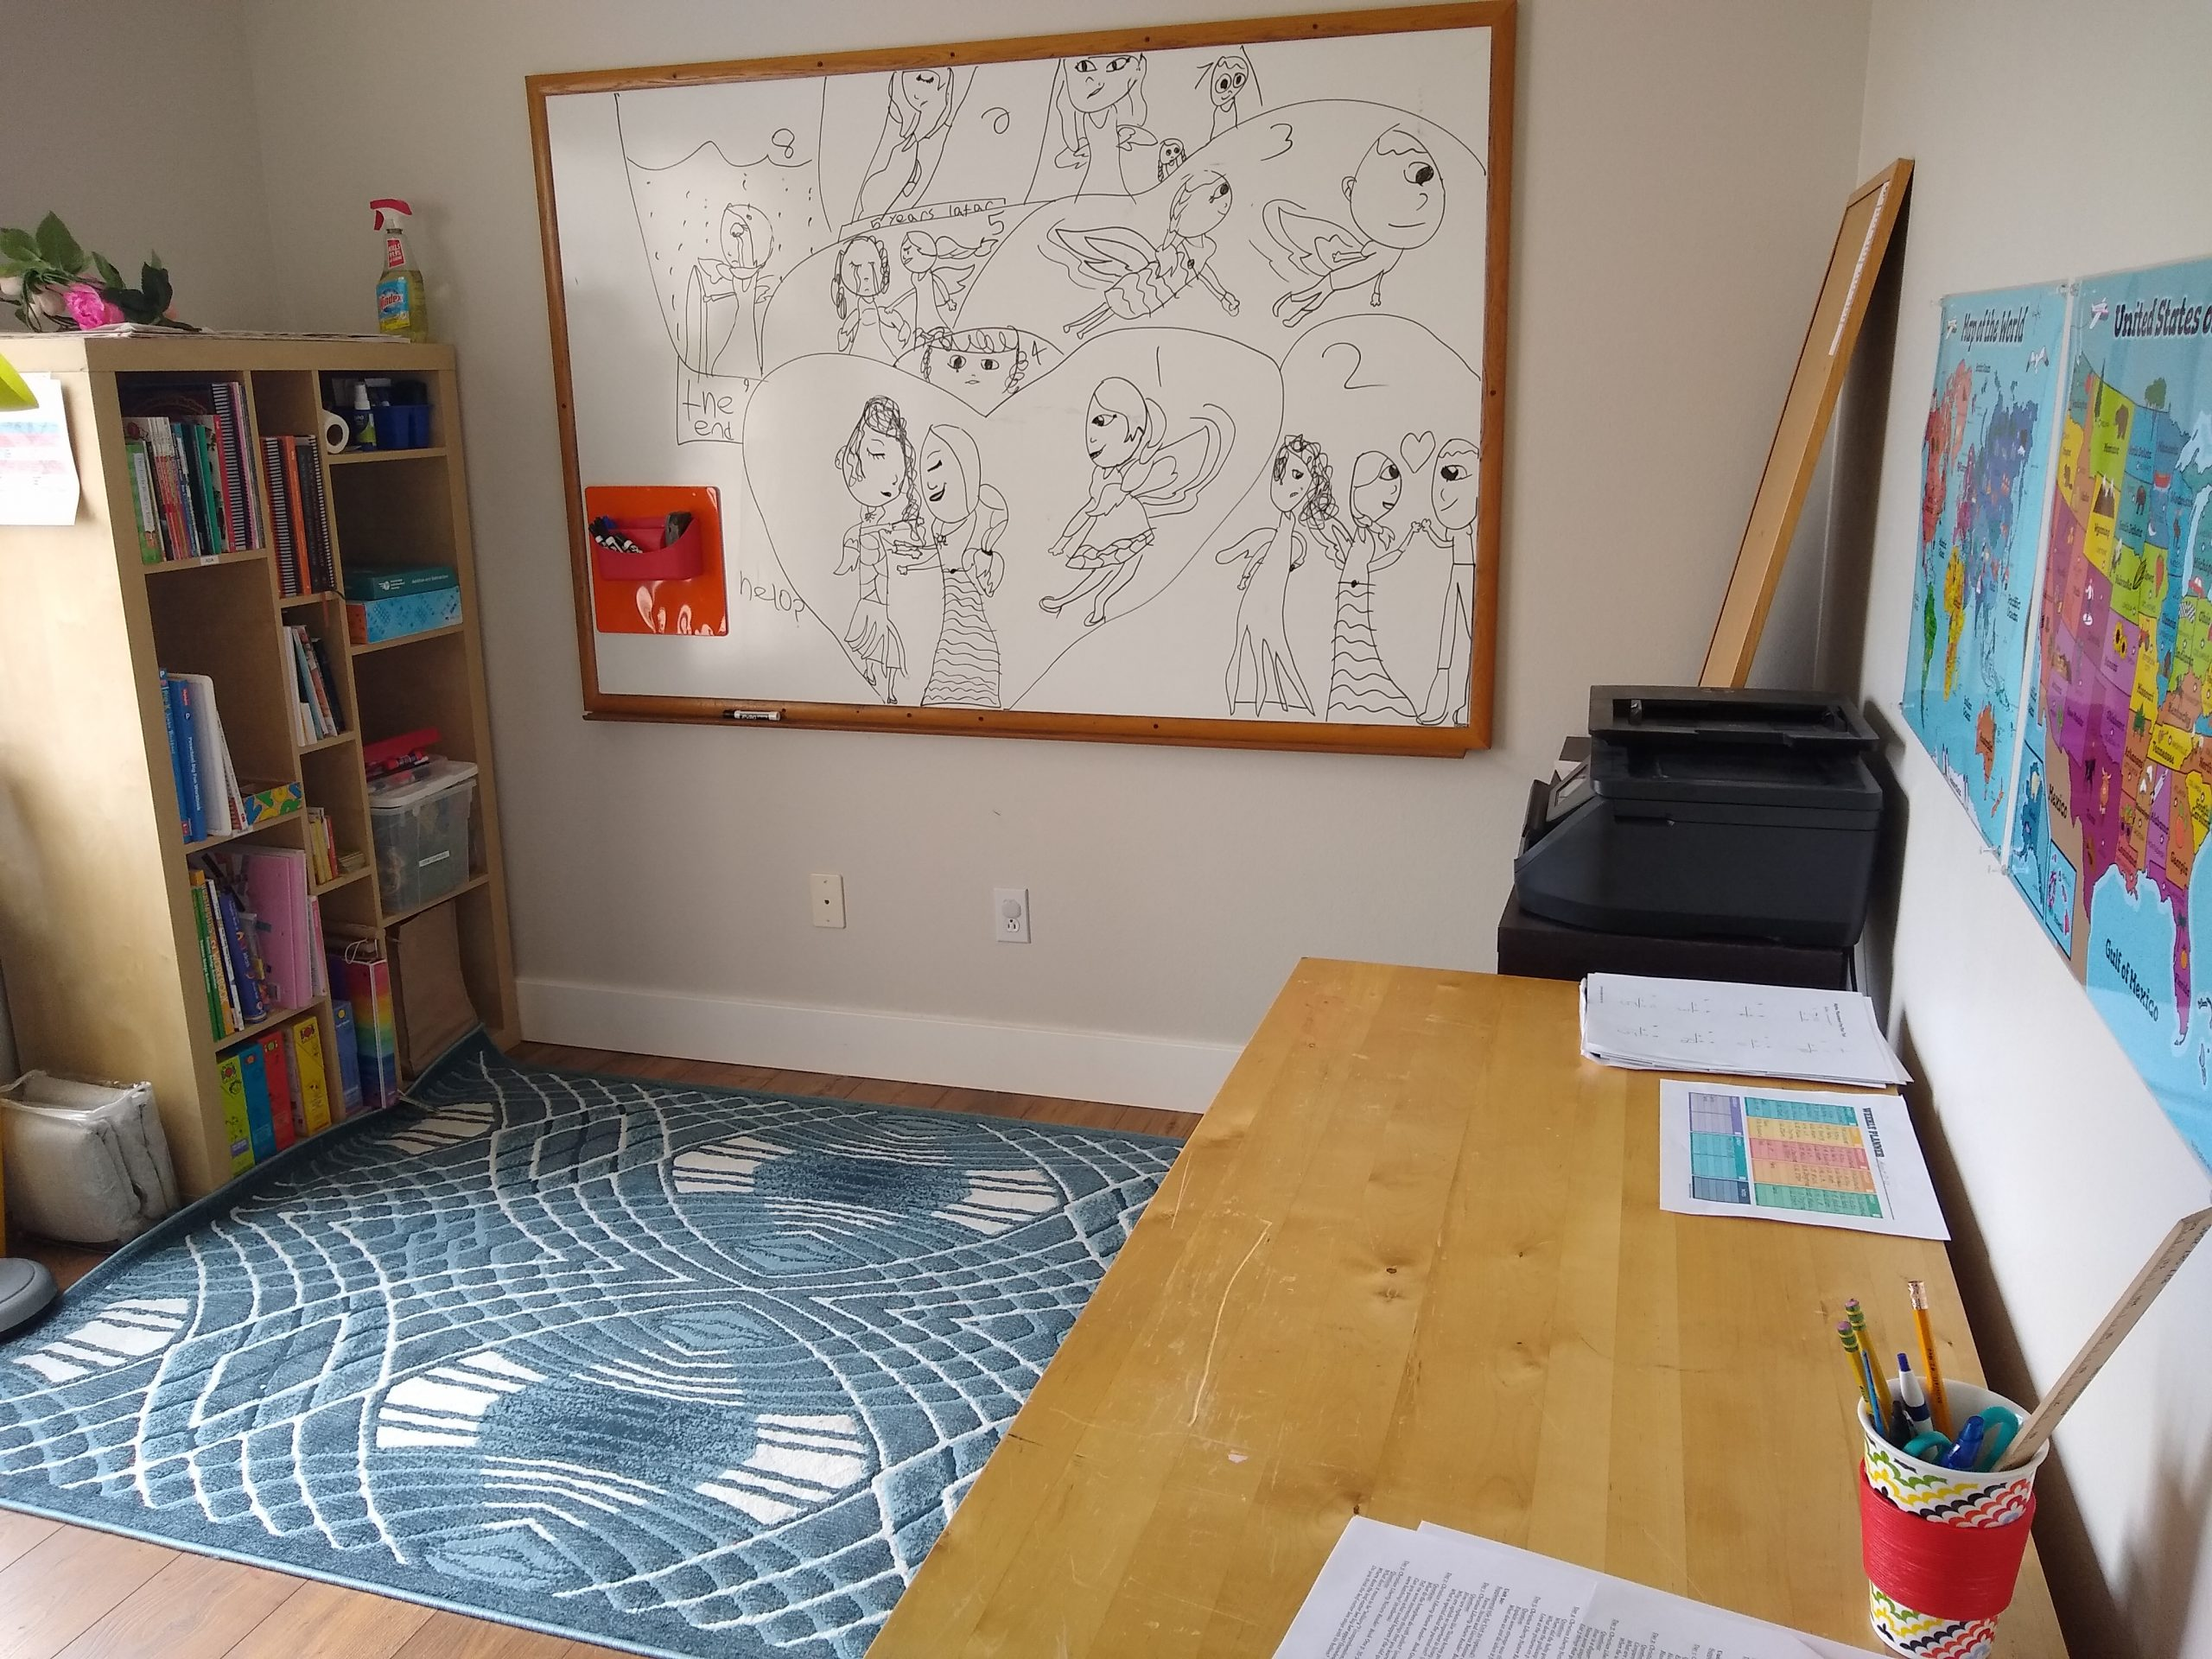 The classroom Mary Webster-Walsh has created for her two daughters. Neither will be attending a public school in-person this fall as a result of the COVID-19 pandemic.